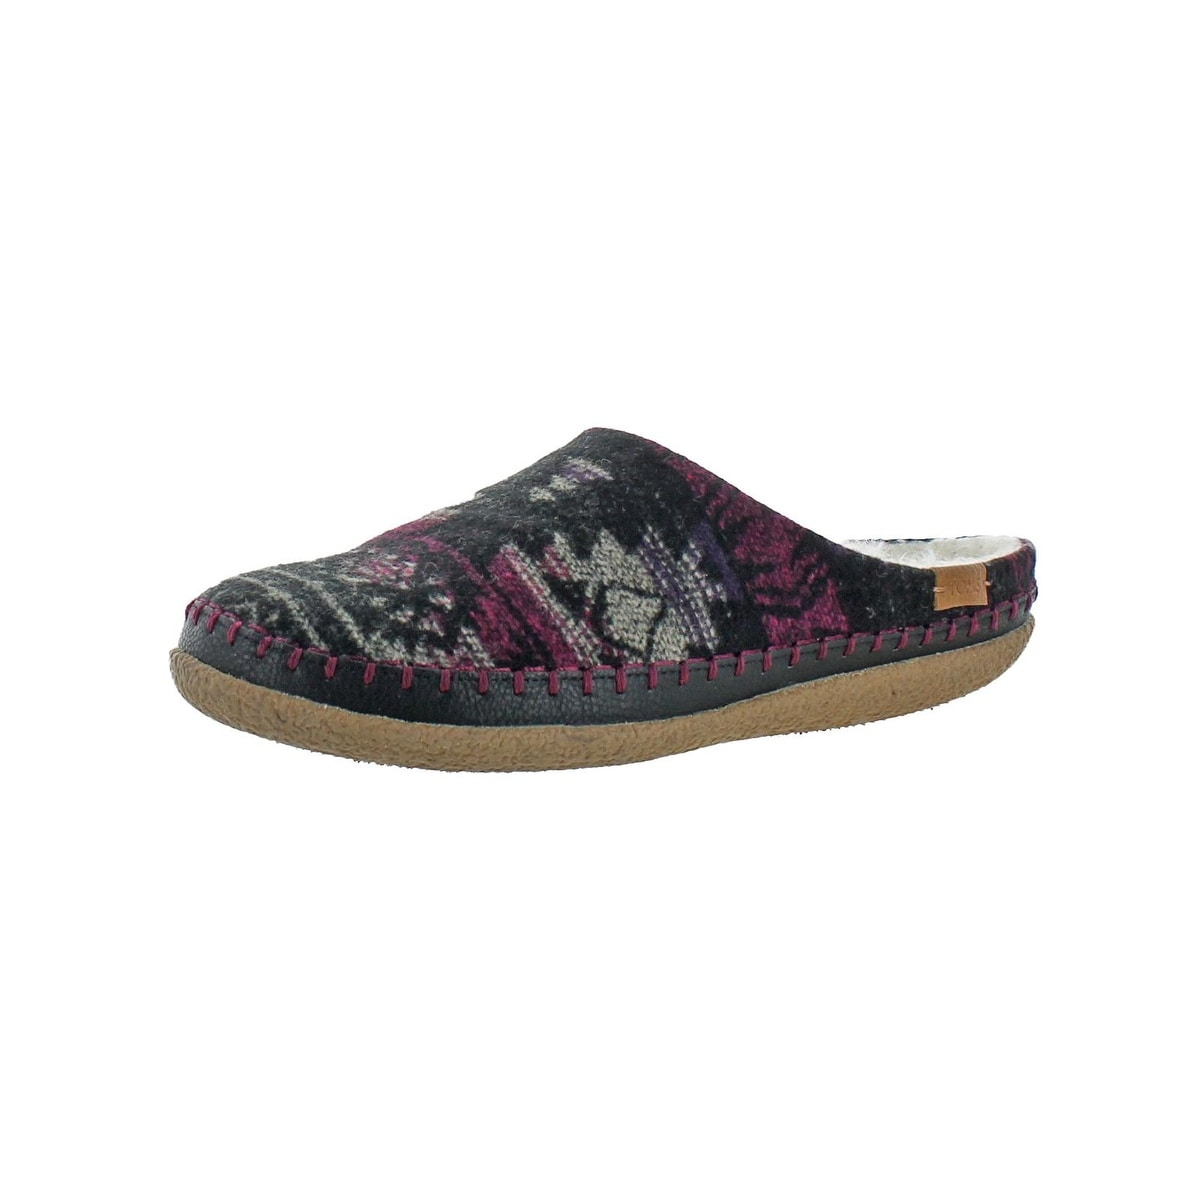 5a9c57b2a8 Shop Toms Womens Ivy Mule Slippers Tribal Print Driver - Free ...